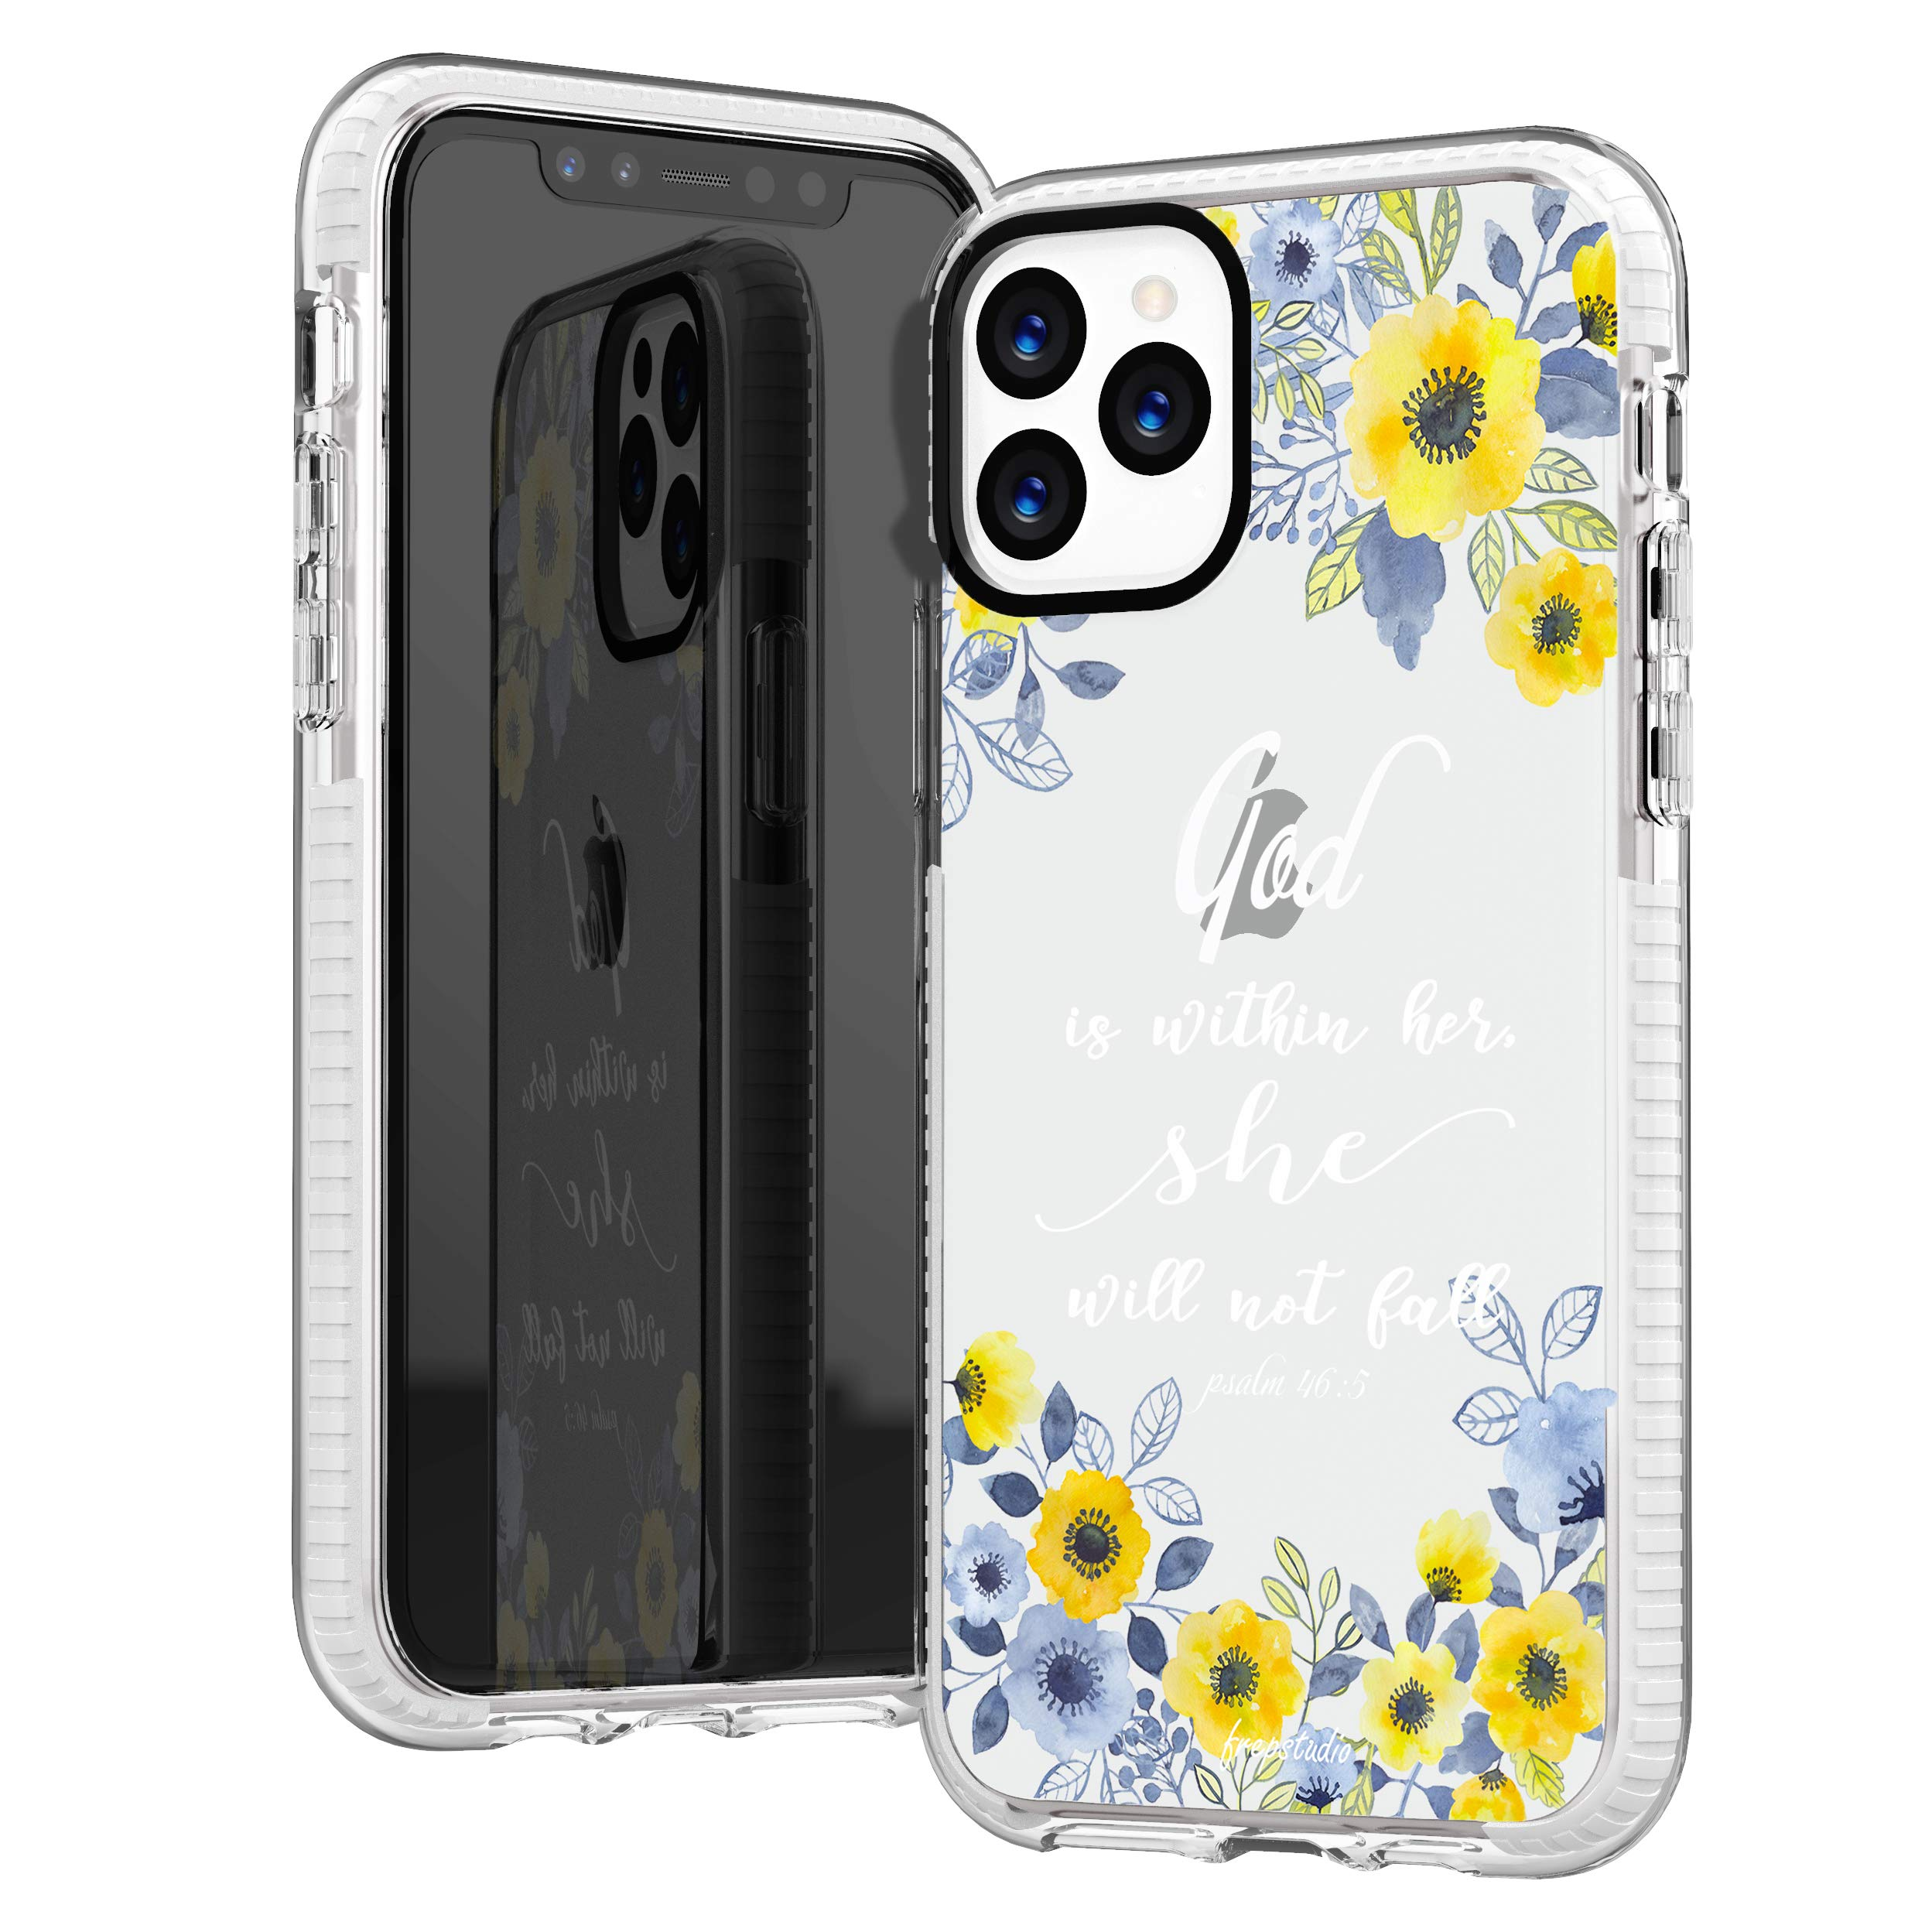 iPhone 11 Pro Max Case,Girls Women Flowers Florals Blooms Roses Christian God Within Her Psalm 46:5 Bible Verses Quotes Inspirational Cute Soft Protective Clear Case Compatible for iPhone 11 Pro Max